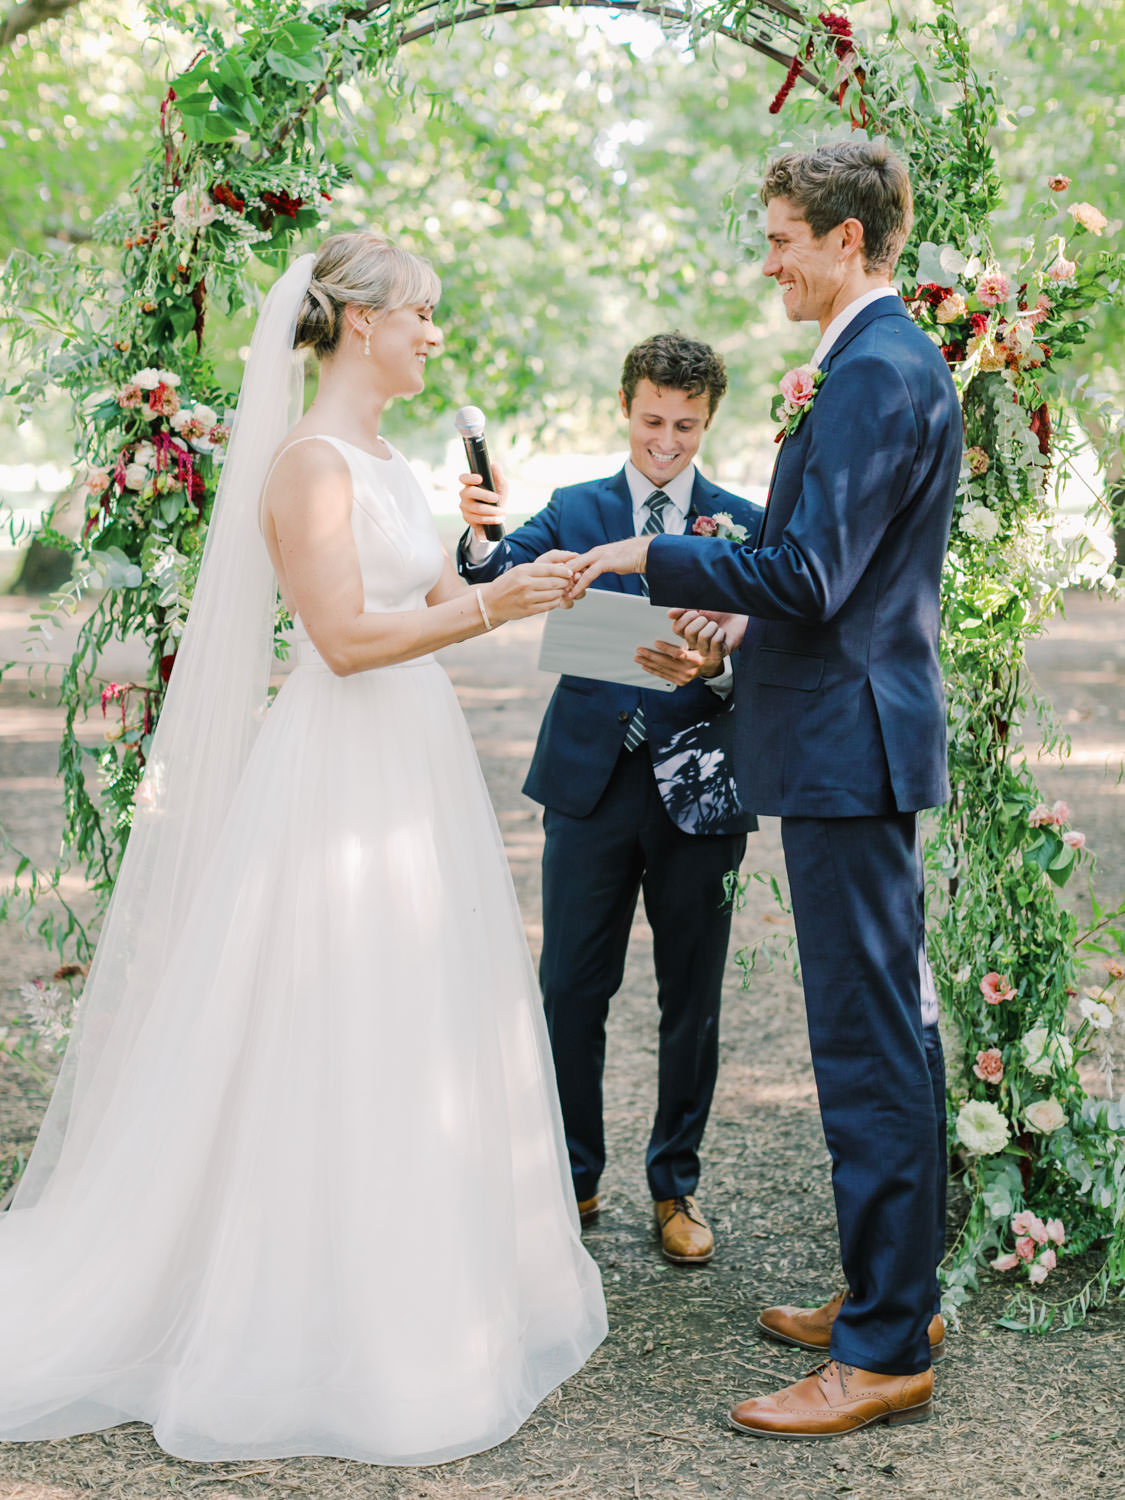 Bride and groom exchanging rings during the ceremony in front of a greenery arch adorned with wine and blush flowers. Full Belly Farm ceremony on Martha Stewart Weddings by film photographer Cavin Elizabeth Photography